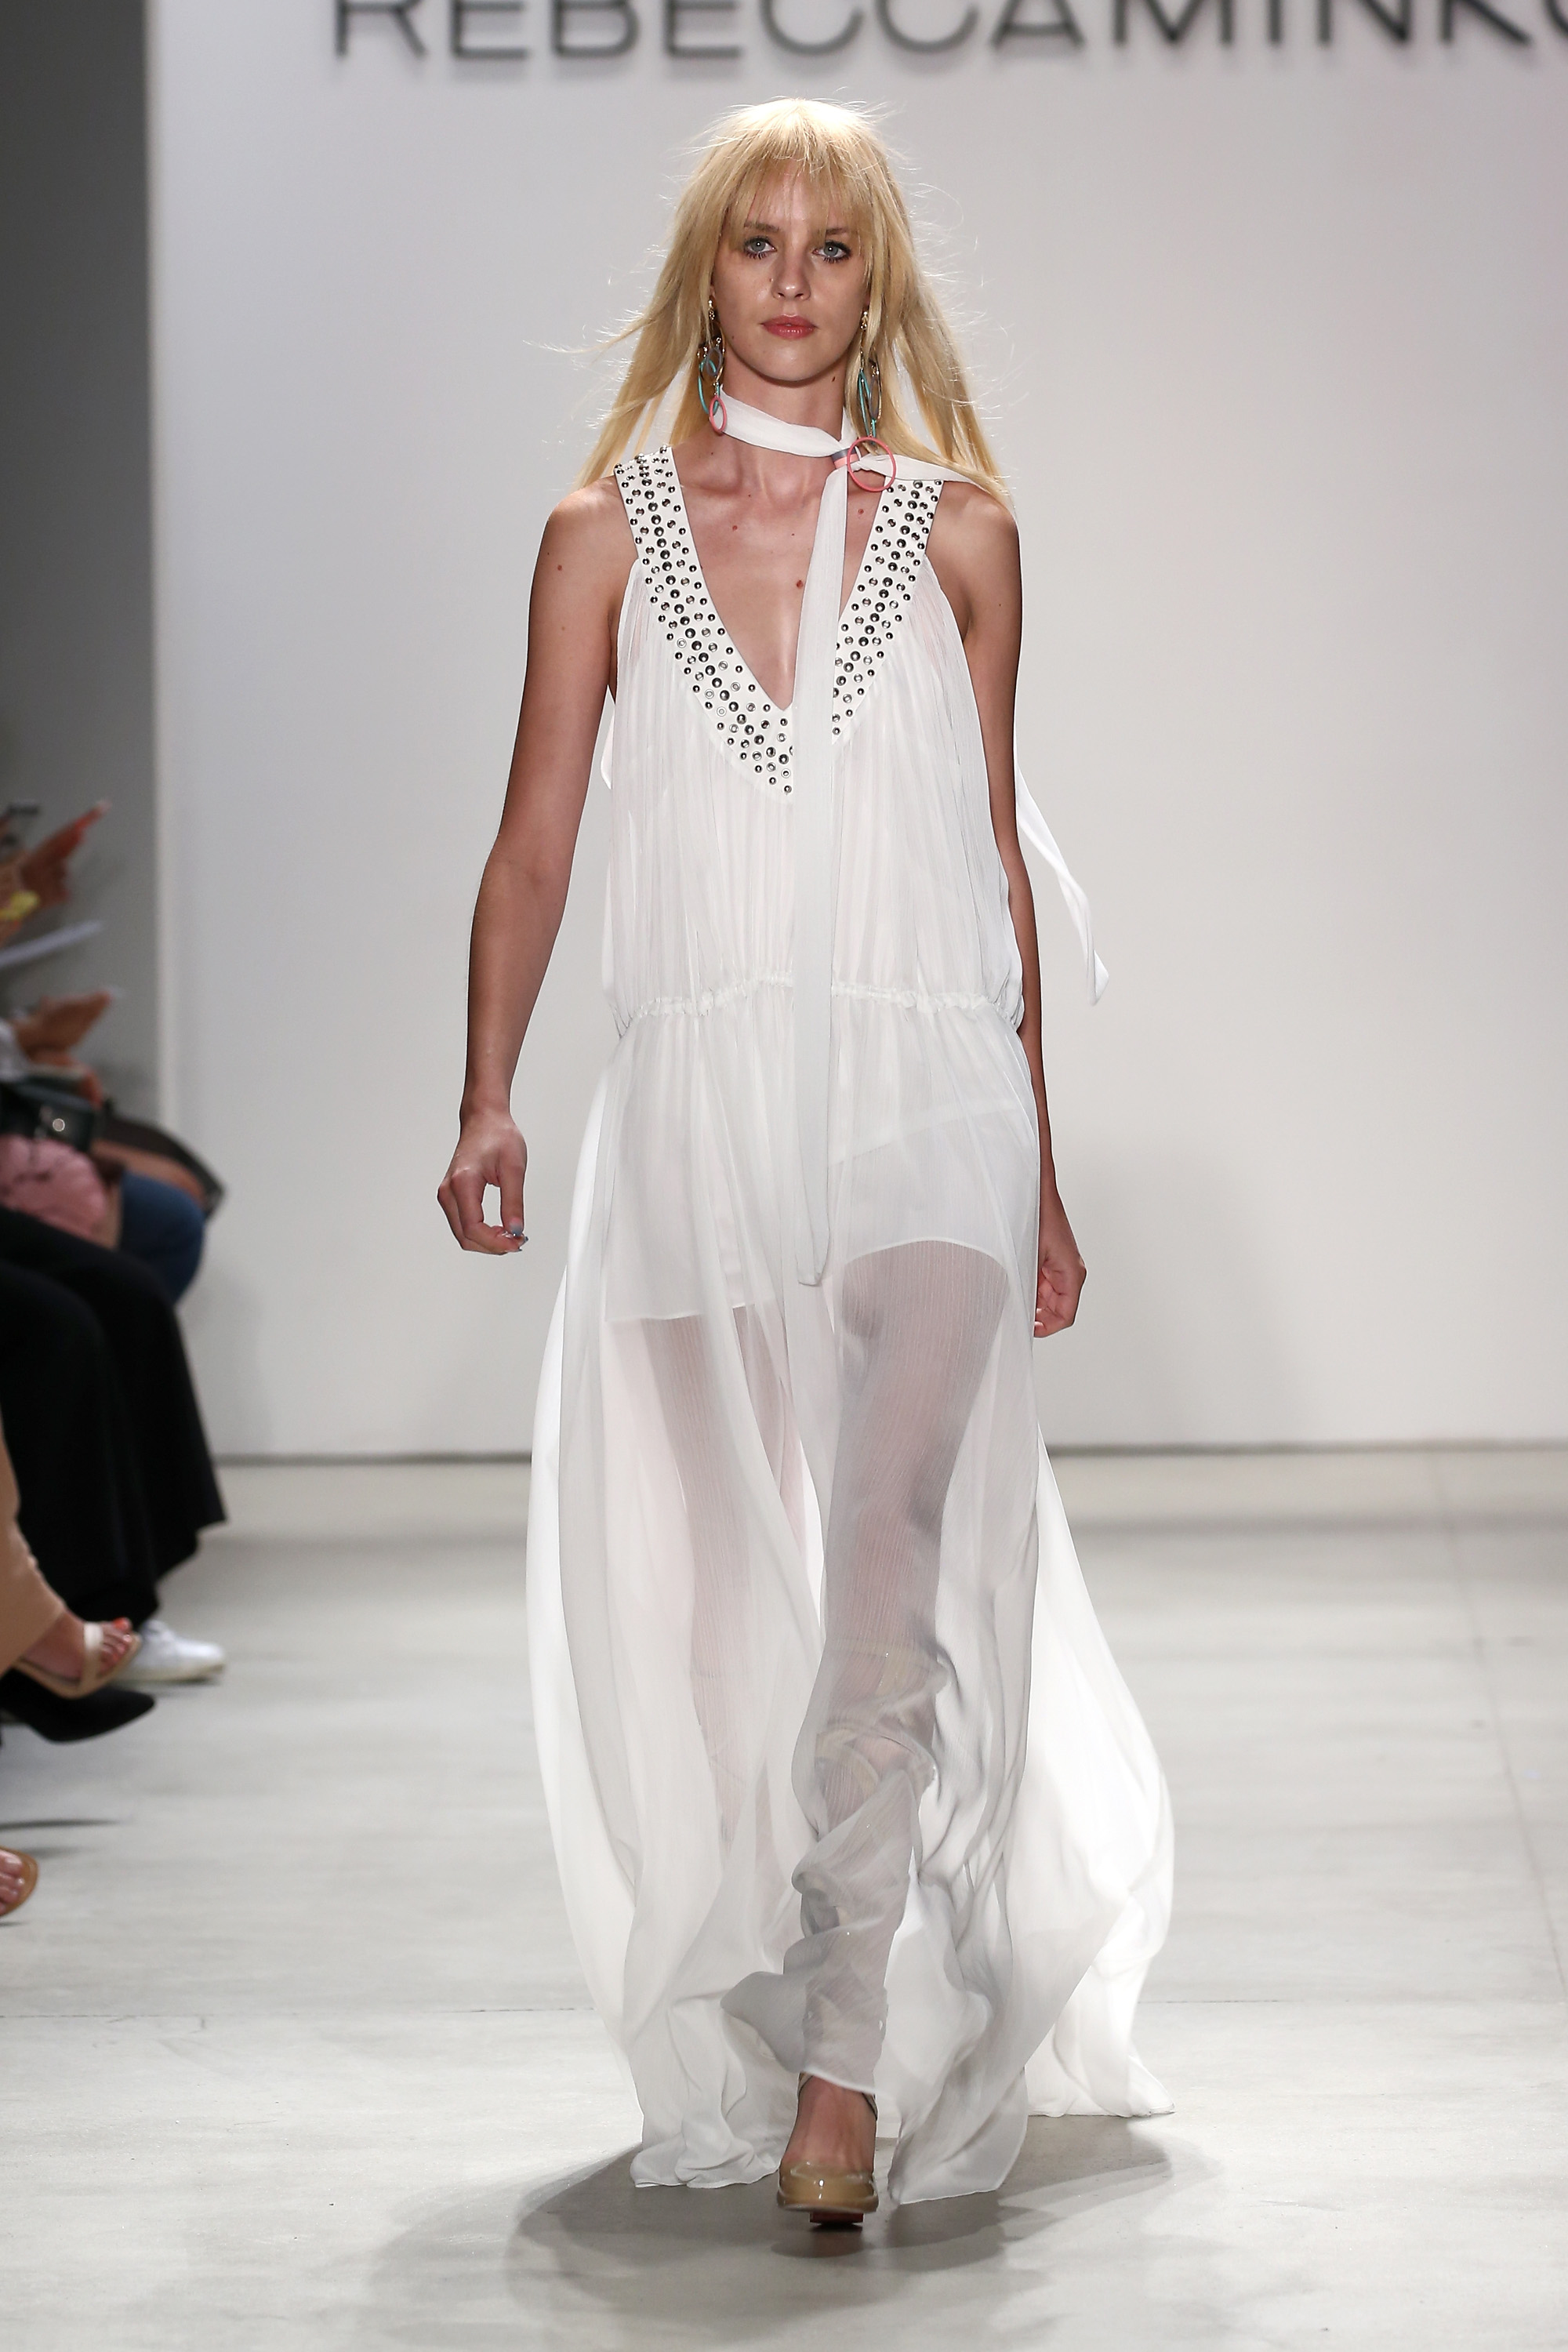 (REBECCA MINKOFF S/S 2016) Here's everything you need to know about the previous New York, London, Milan and Paris Fashion Week + the S/S 2016 trends you should look out for this upcoming season. Click to read more!